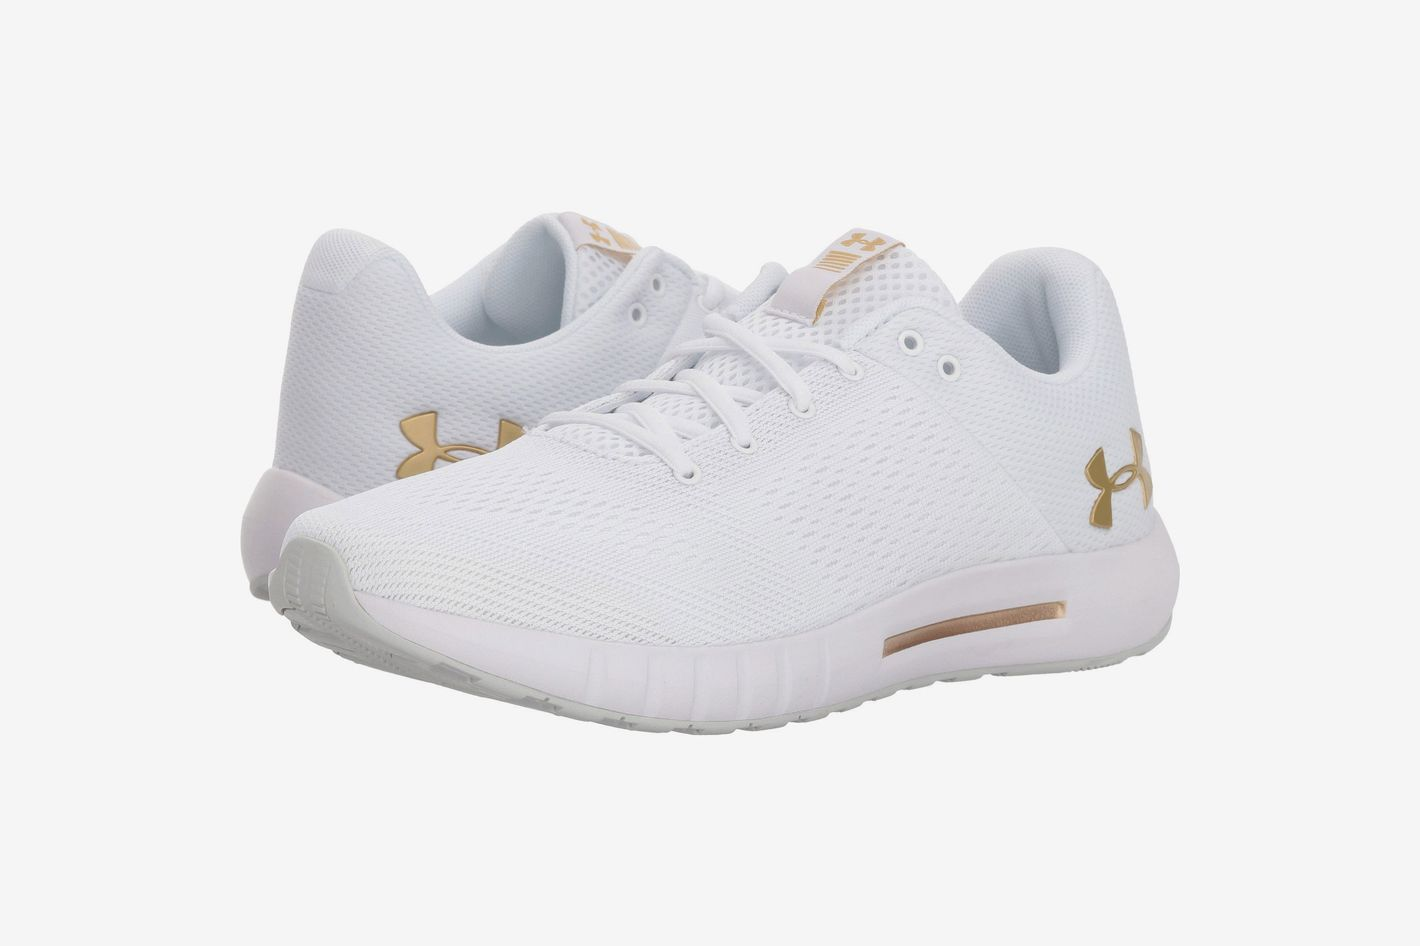 8b544efe0e7c3 Under Armour UA Micro G Pursuit